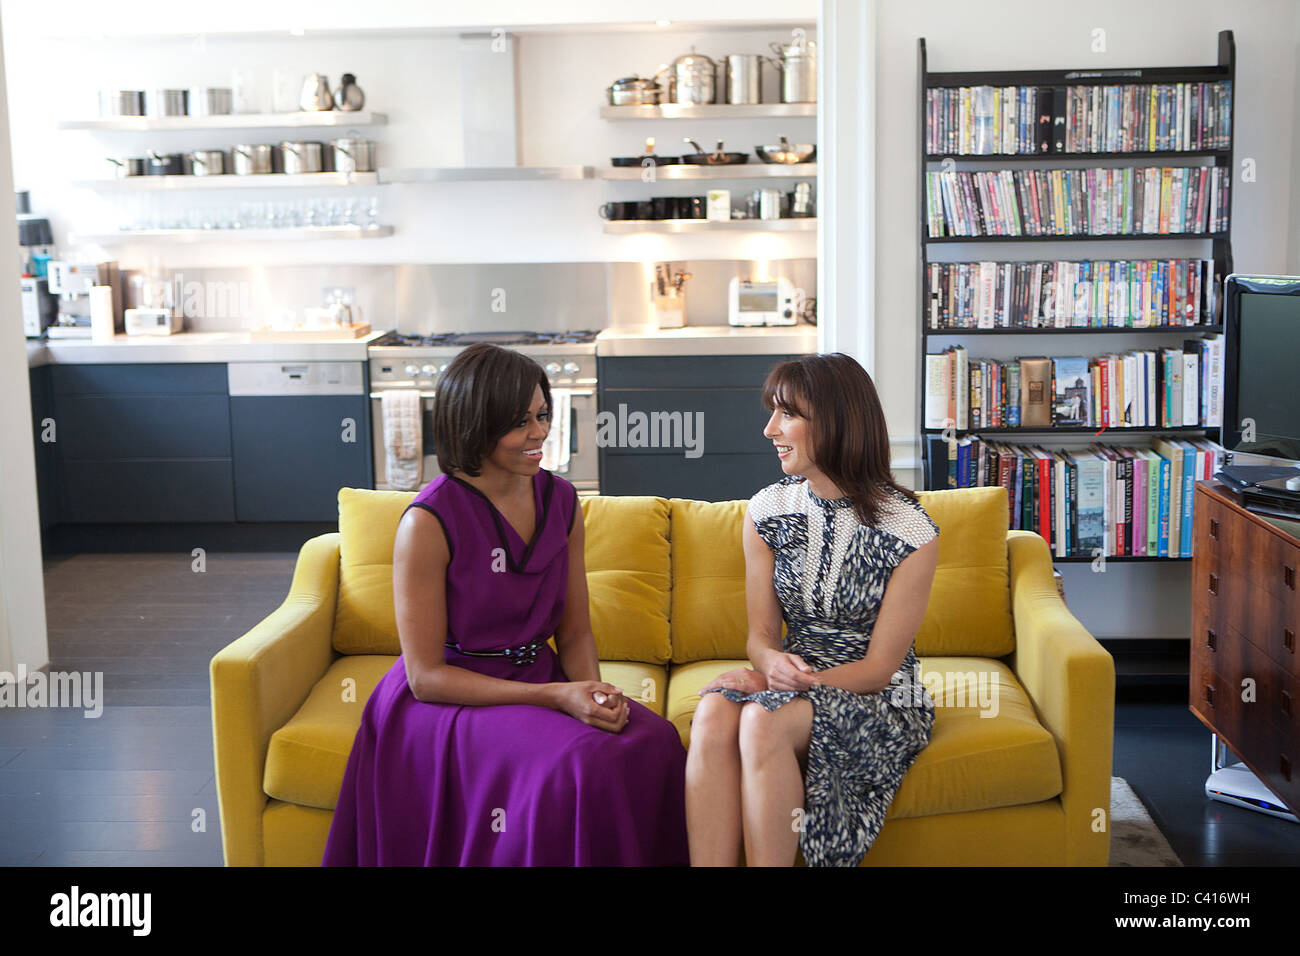 First Lady Michelle Obama and Samantha Cameron, talk before having tea in the private residence at Downing Street - Stock Image